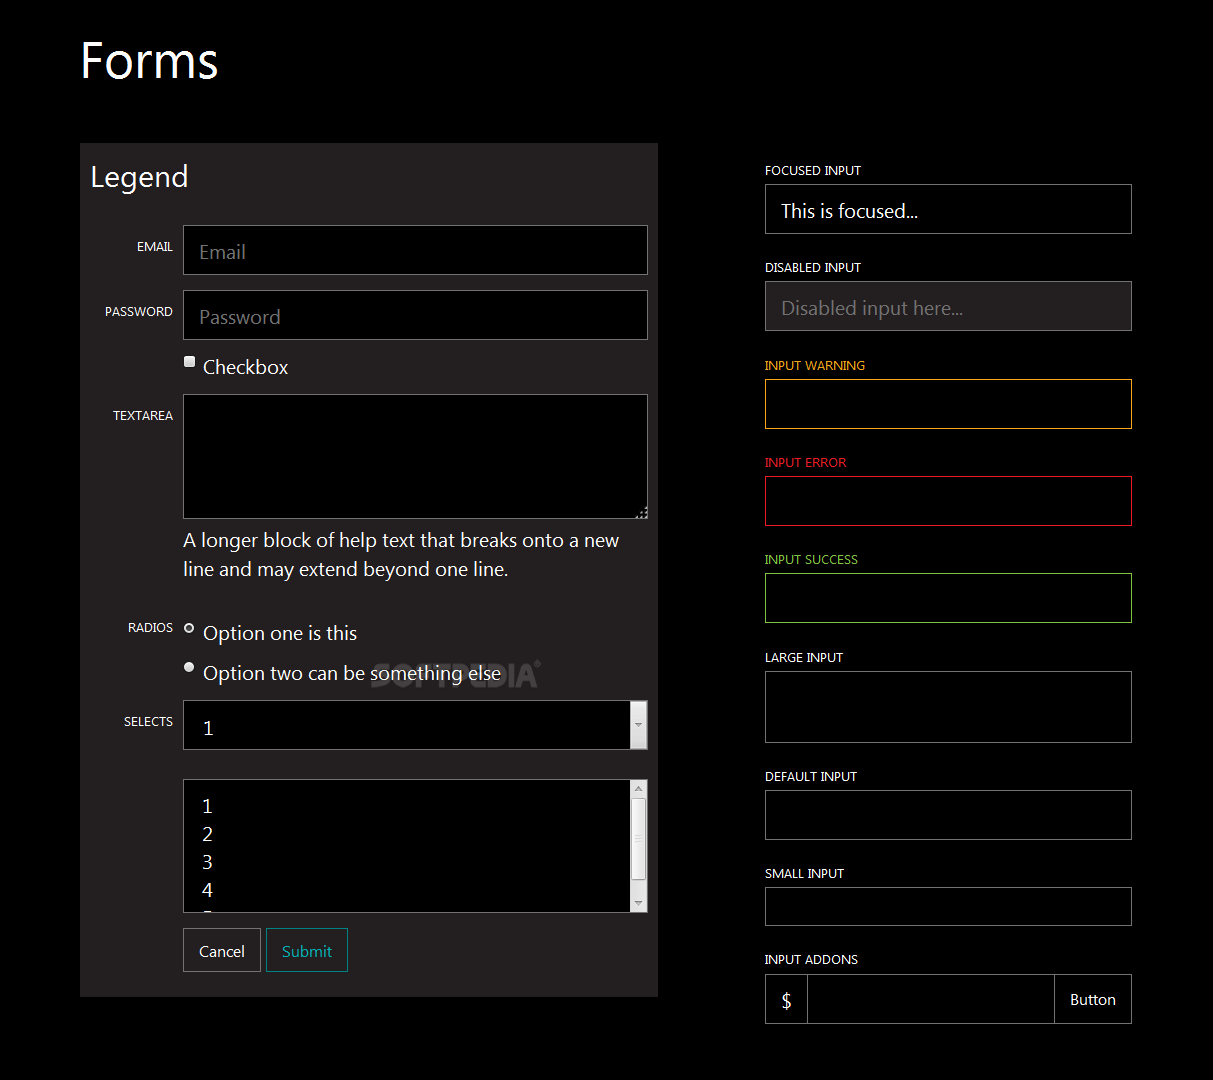 M8tro Bootstrap - M8tro Bootstrap also supports basic form elements, pagers, pills, tab panels, and breadcrumbs